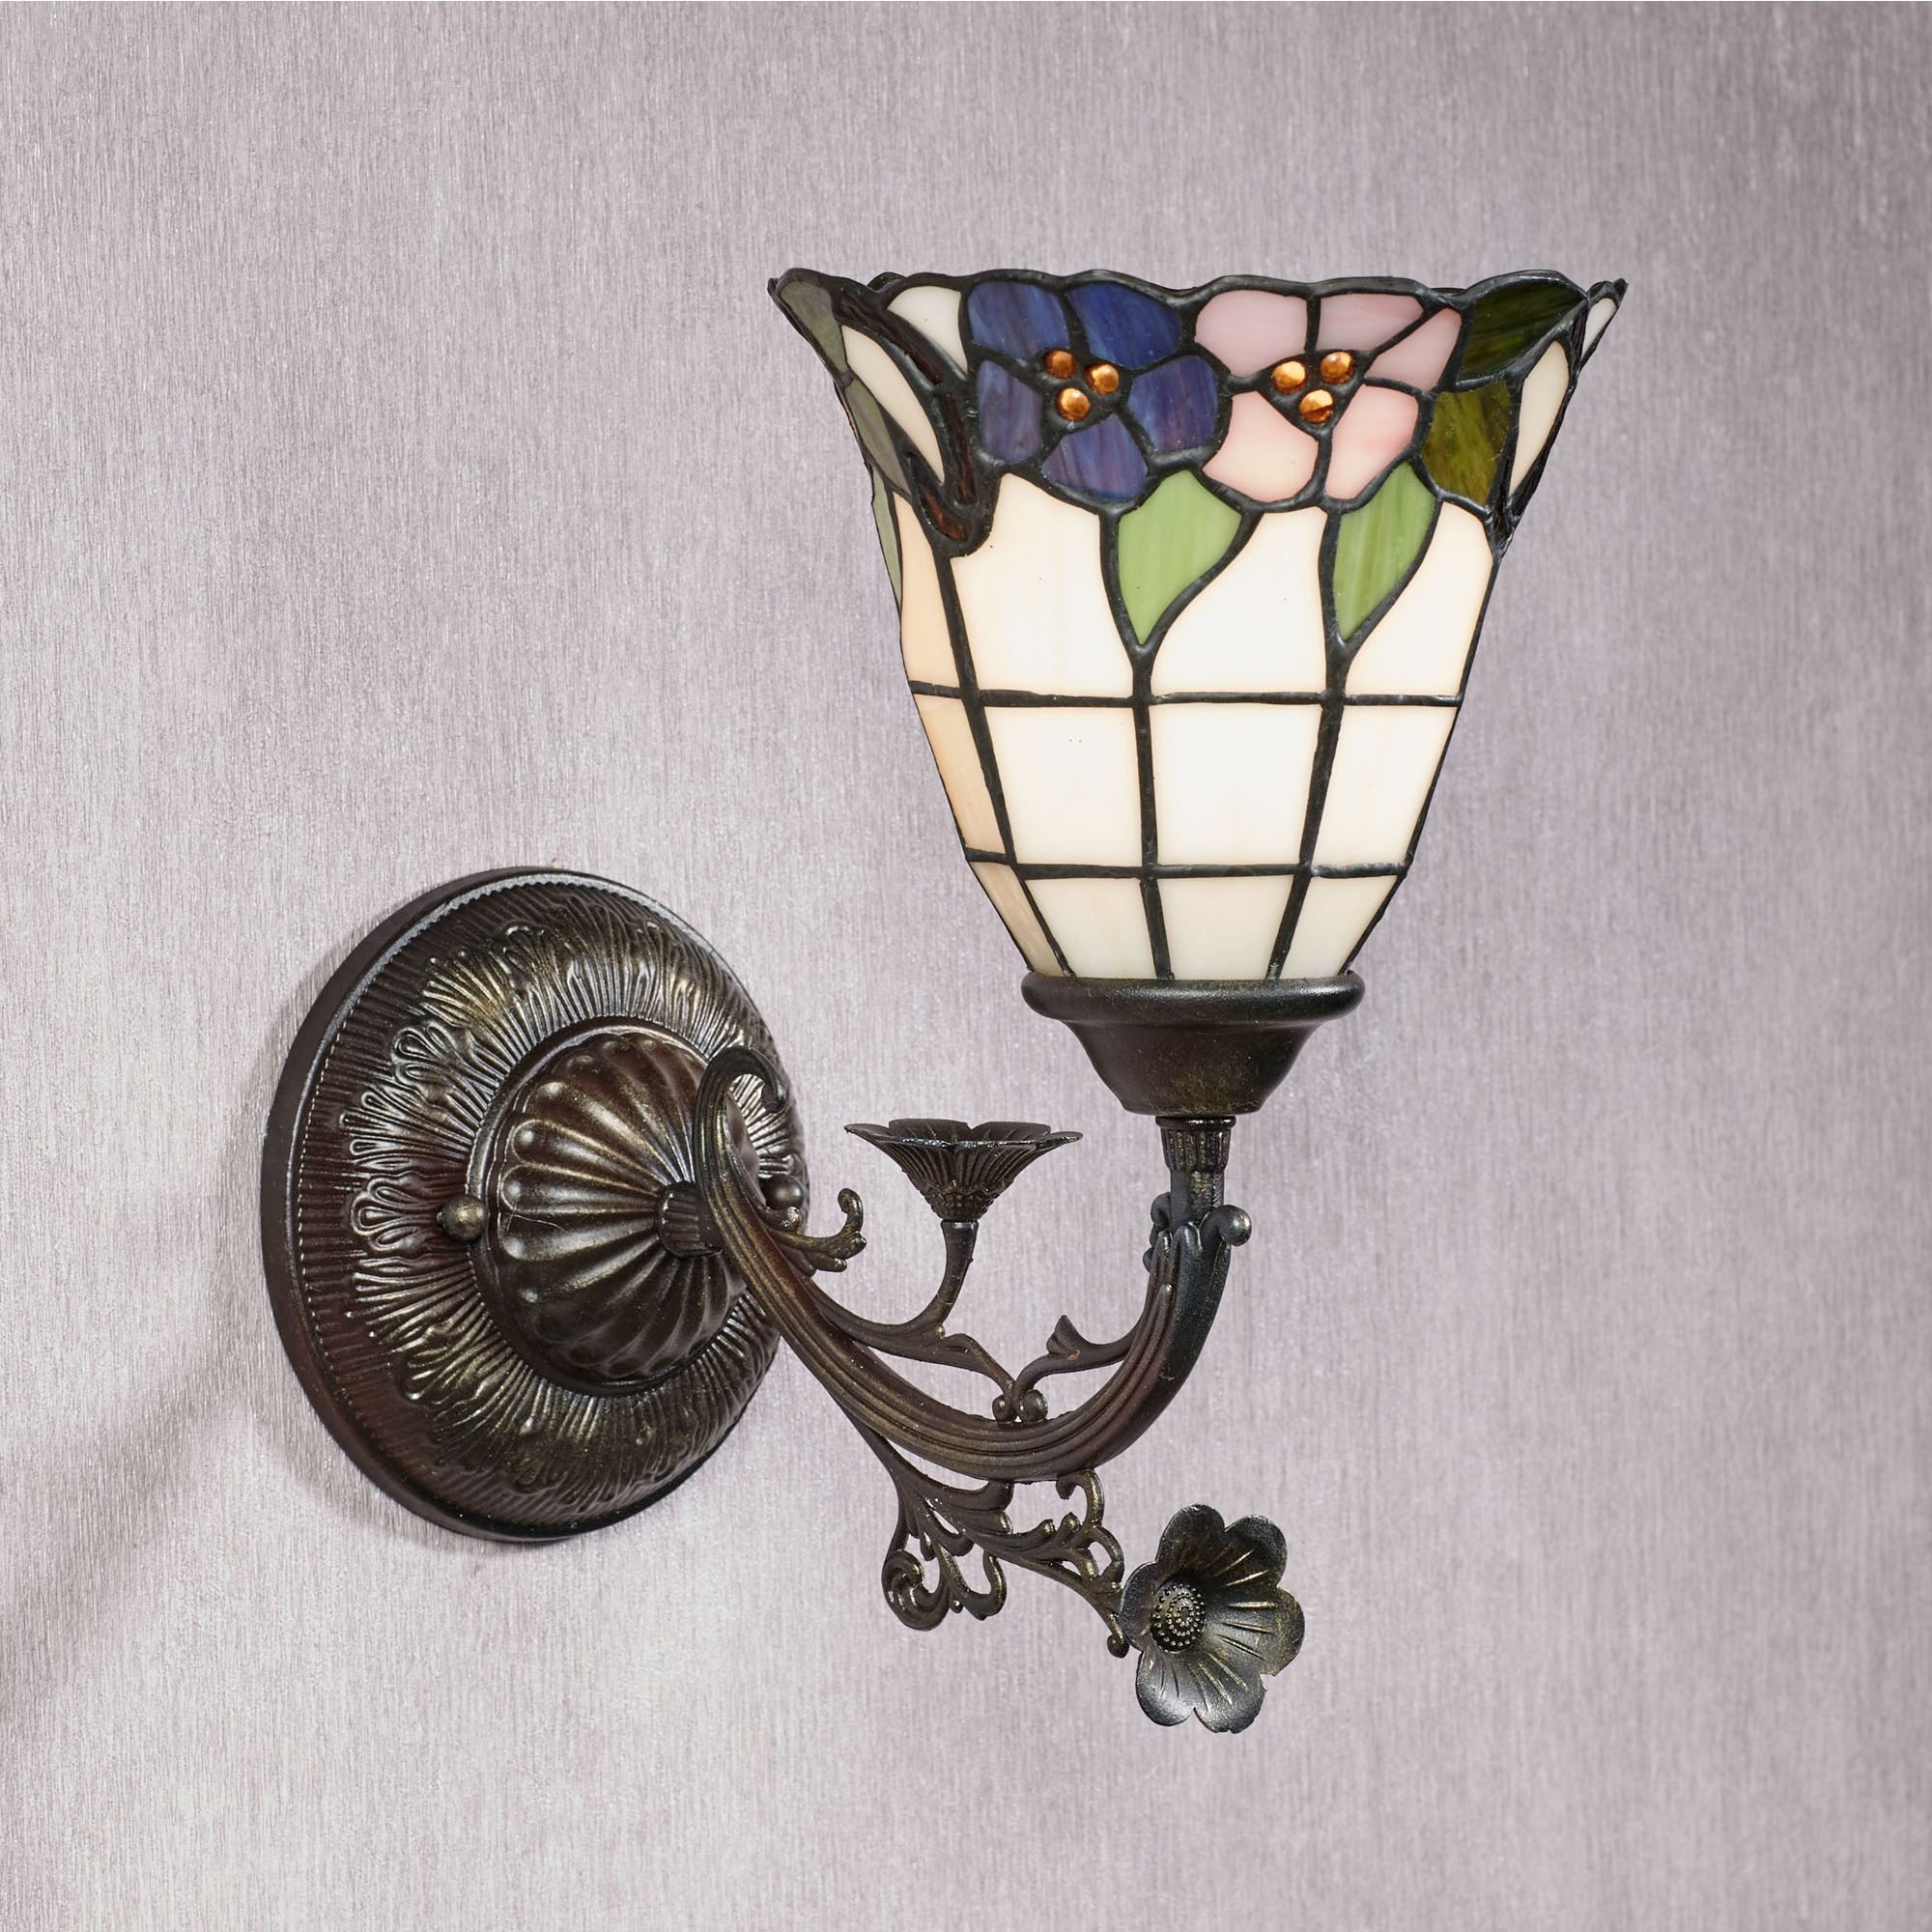 Shyla Floral Stained Glass Wall Sconce Lamp